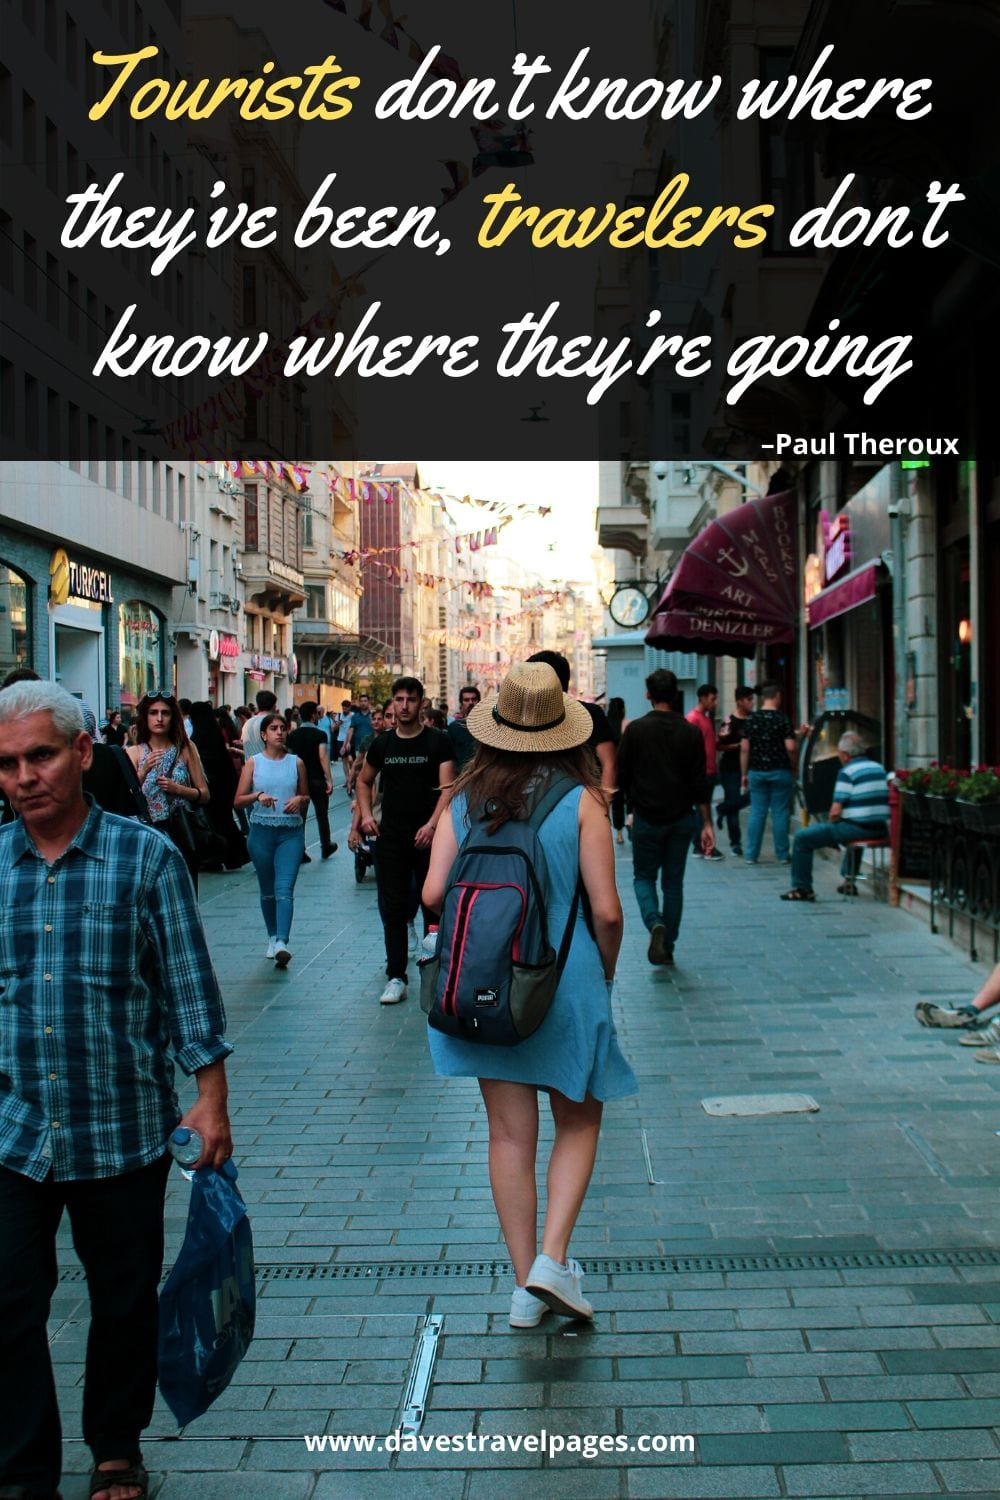 """Travel and tourism quotes: """"Tourists don't know where they've been, travelers don't know where they're going."""" –Paul Theroux"""